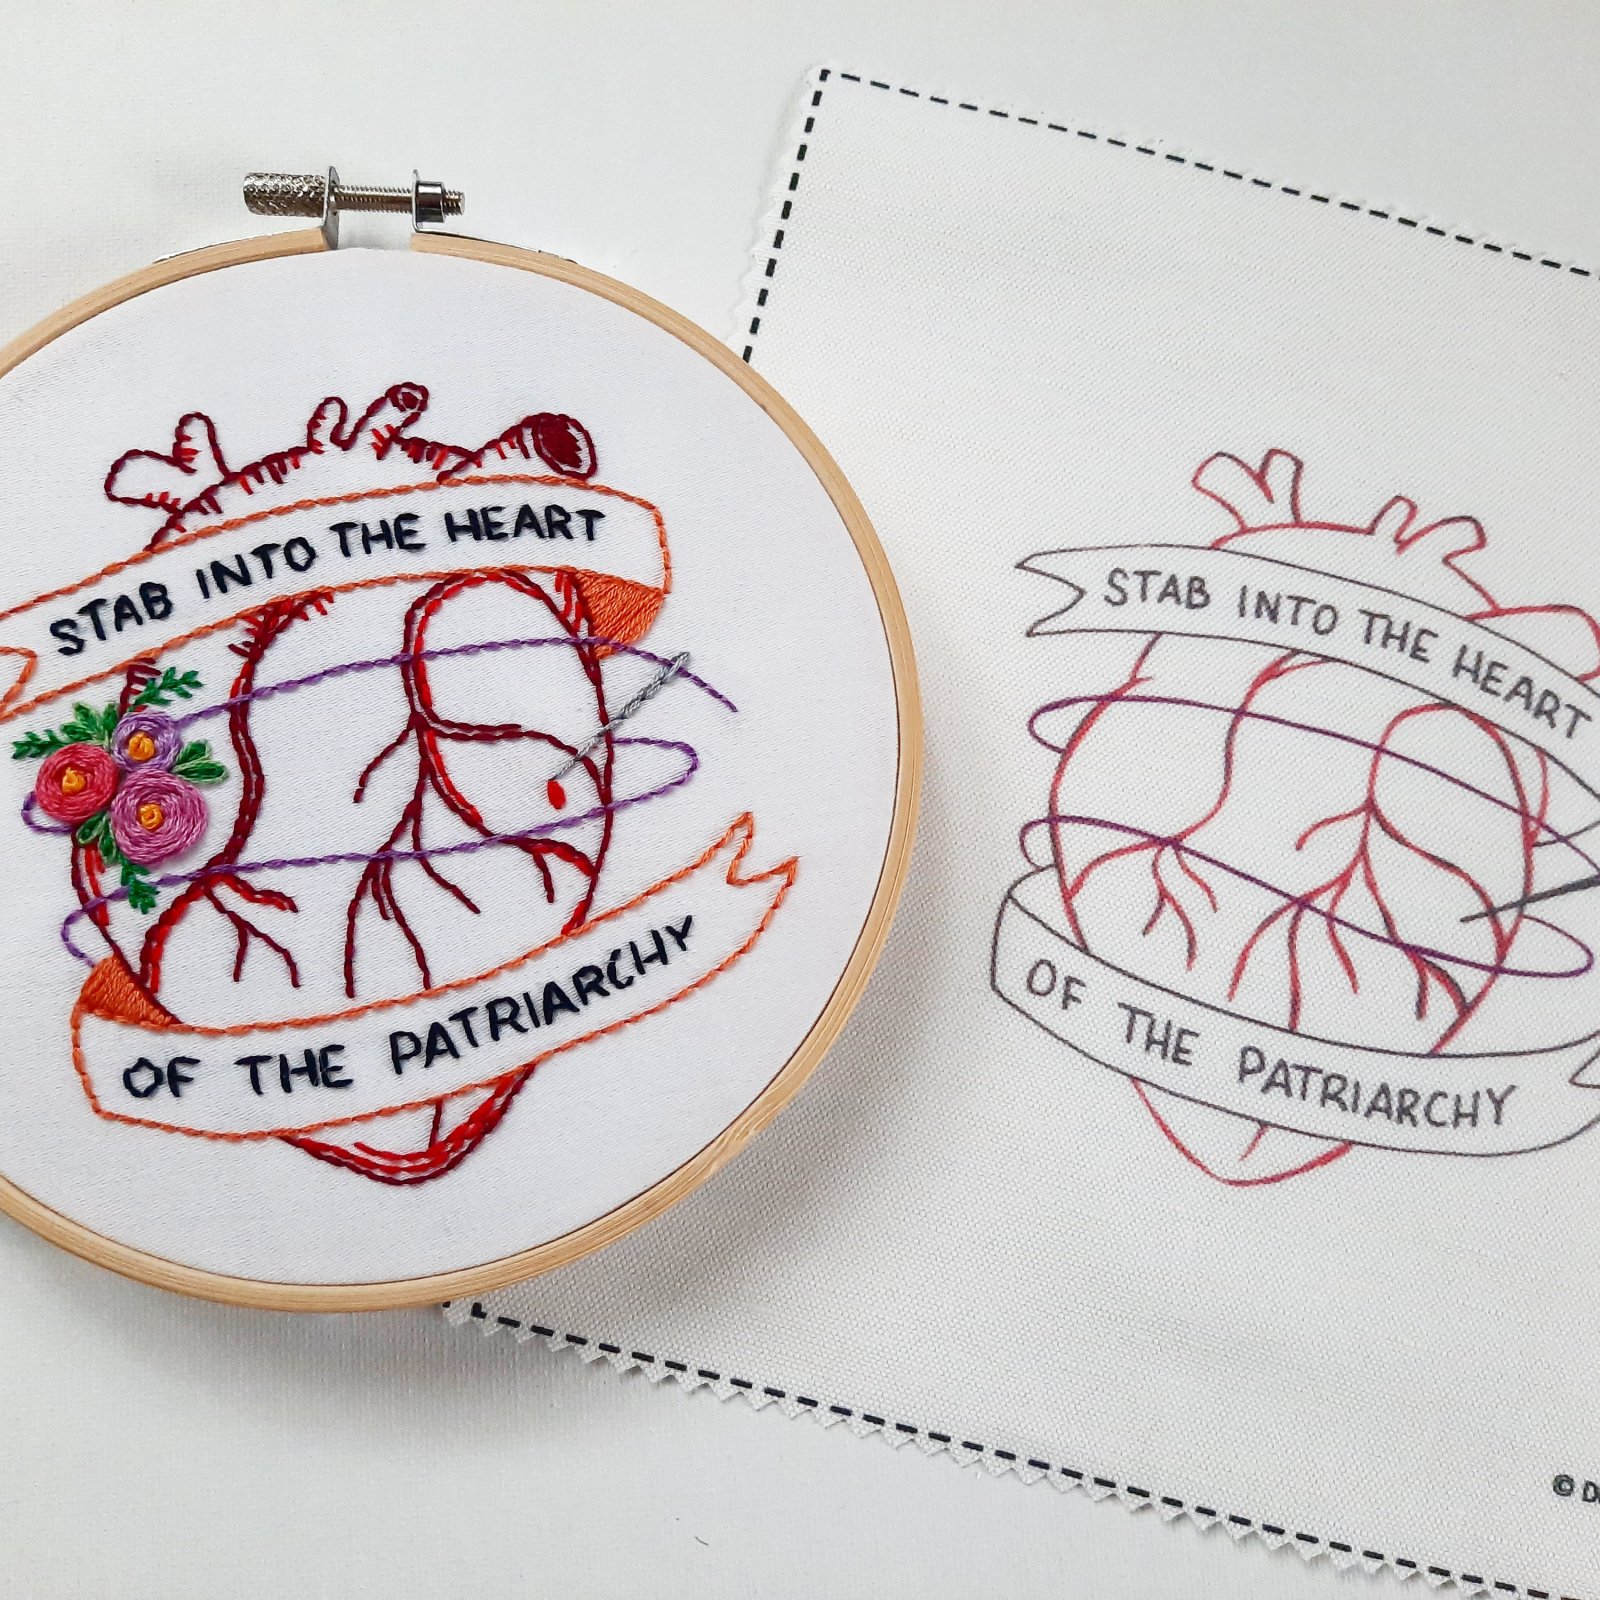 Emboidery Kit Stab Into the Heart of the Patriarchy - Downy Tree Art